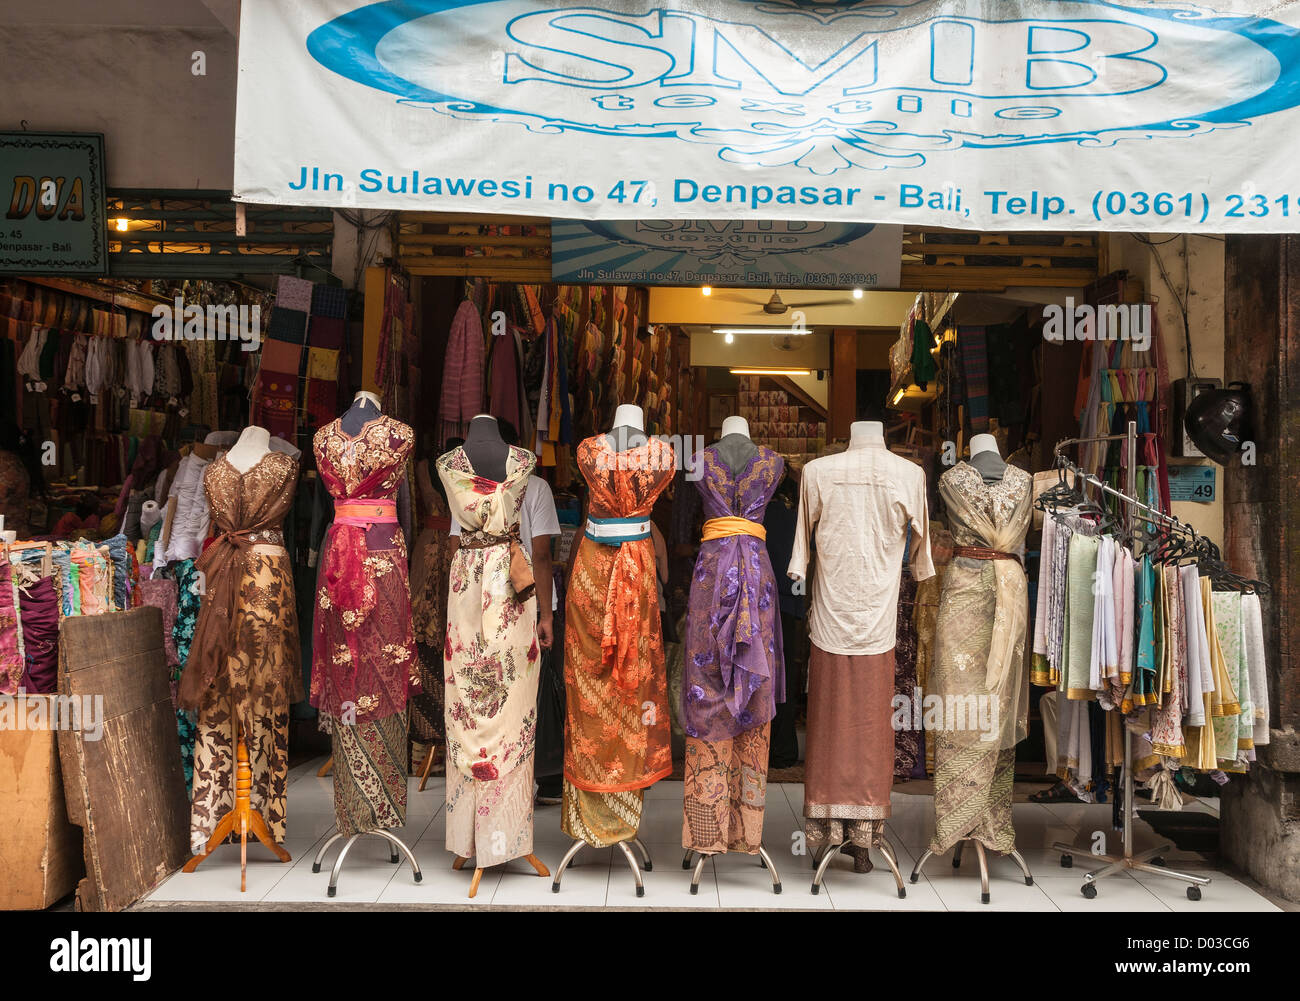 Shops dealing in traditional textiles in Sulawesi Street, Denpasar, Southern Bali, Indonesia. - Stock Image